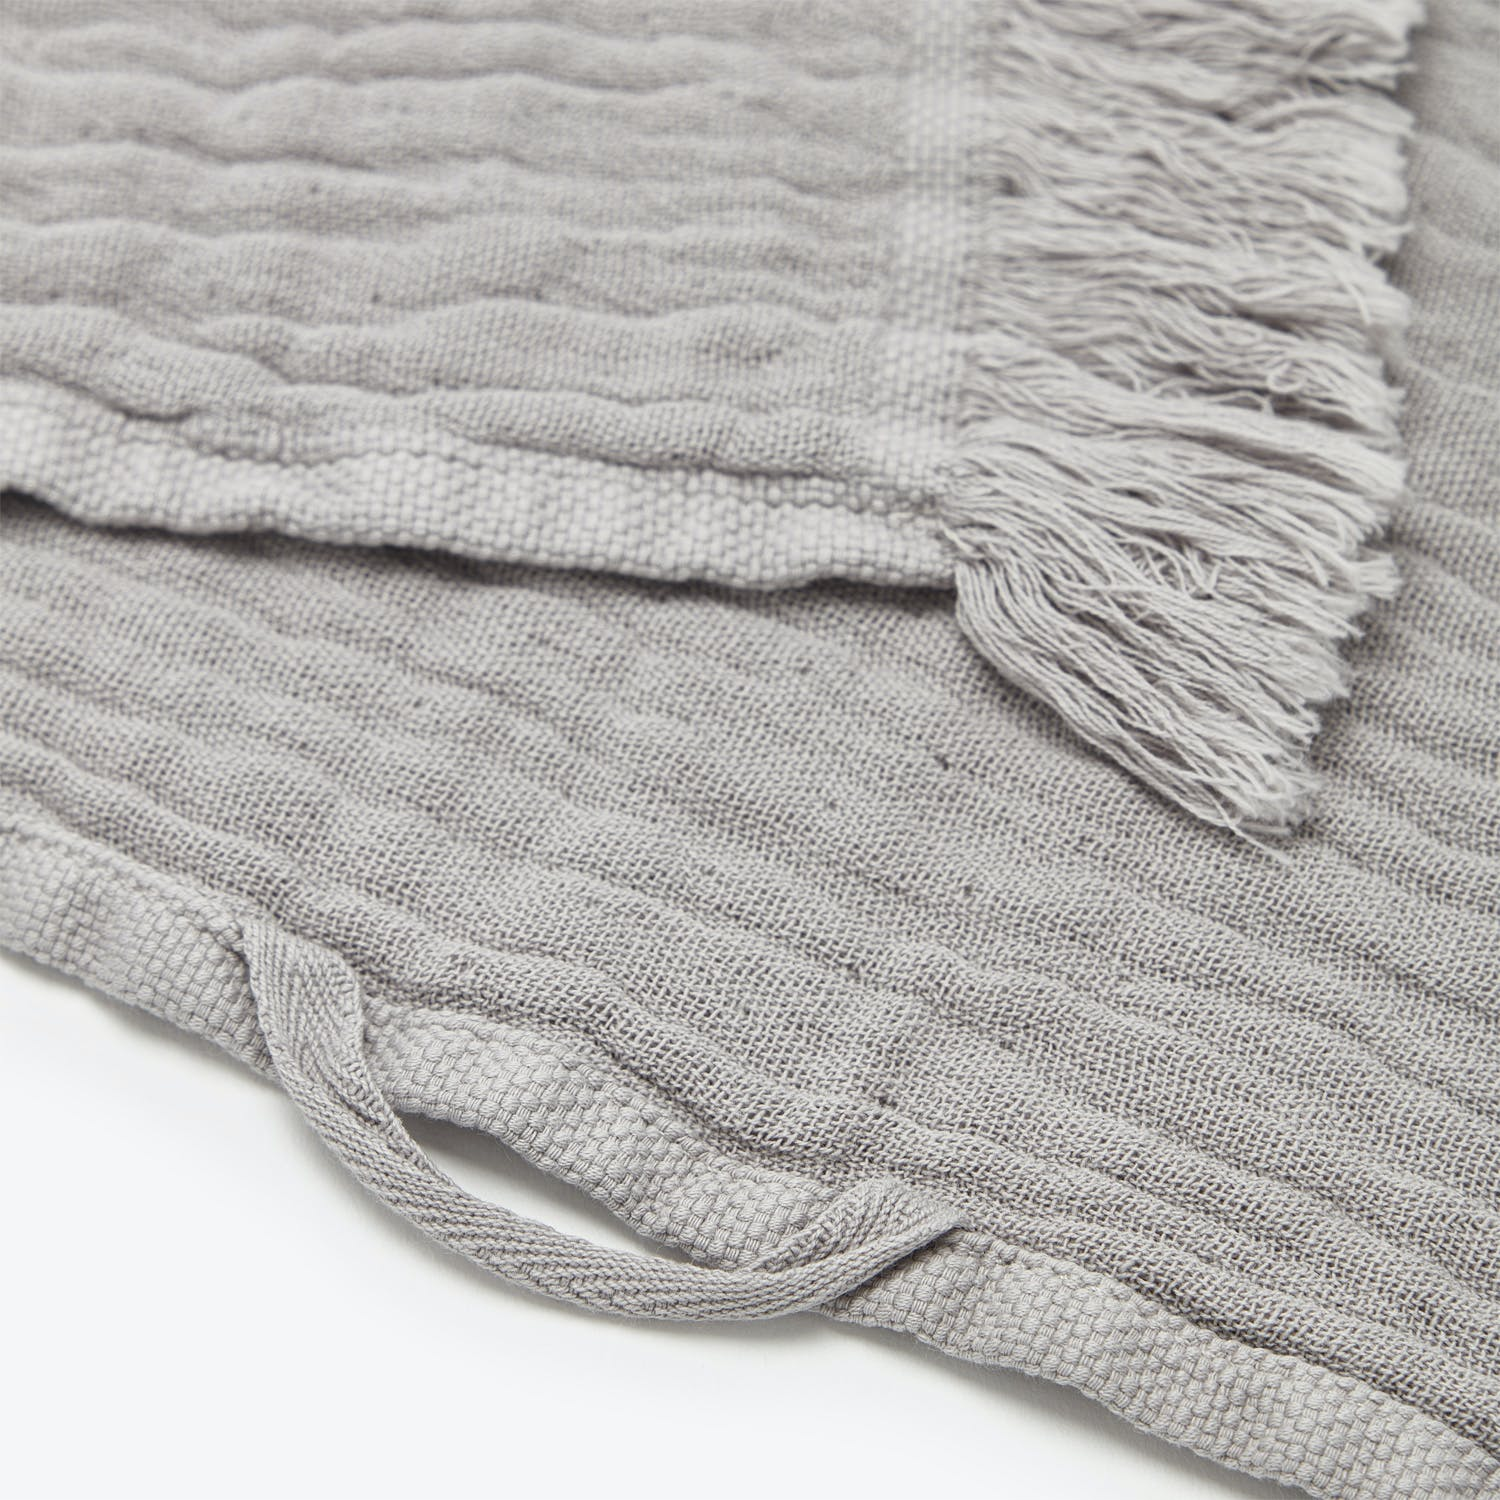 Fringe Bath Towel Gray